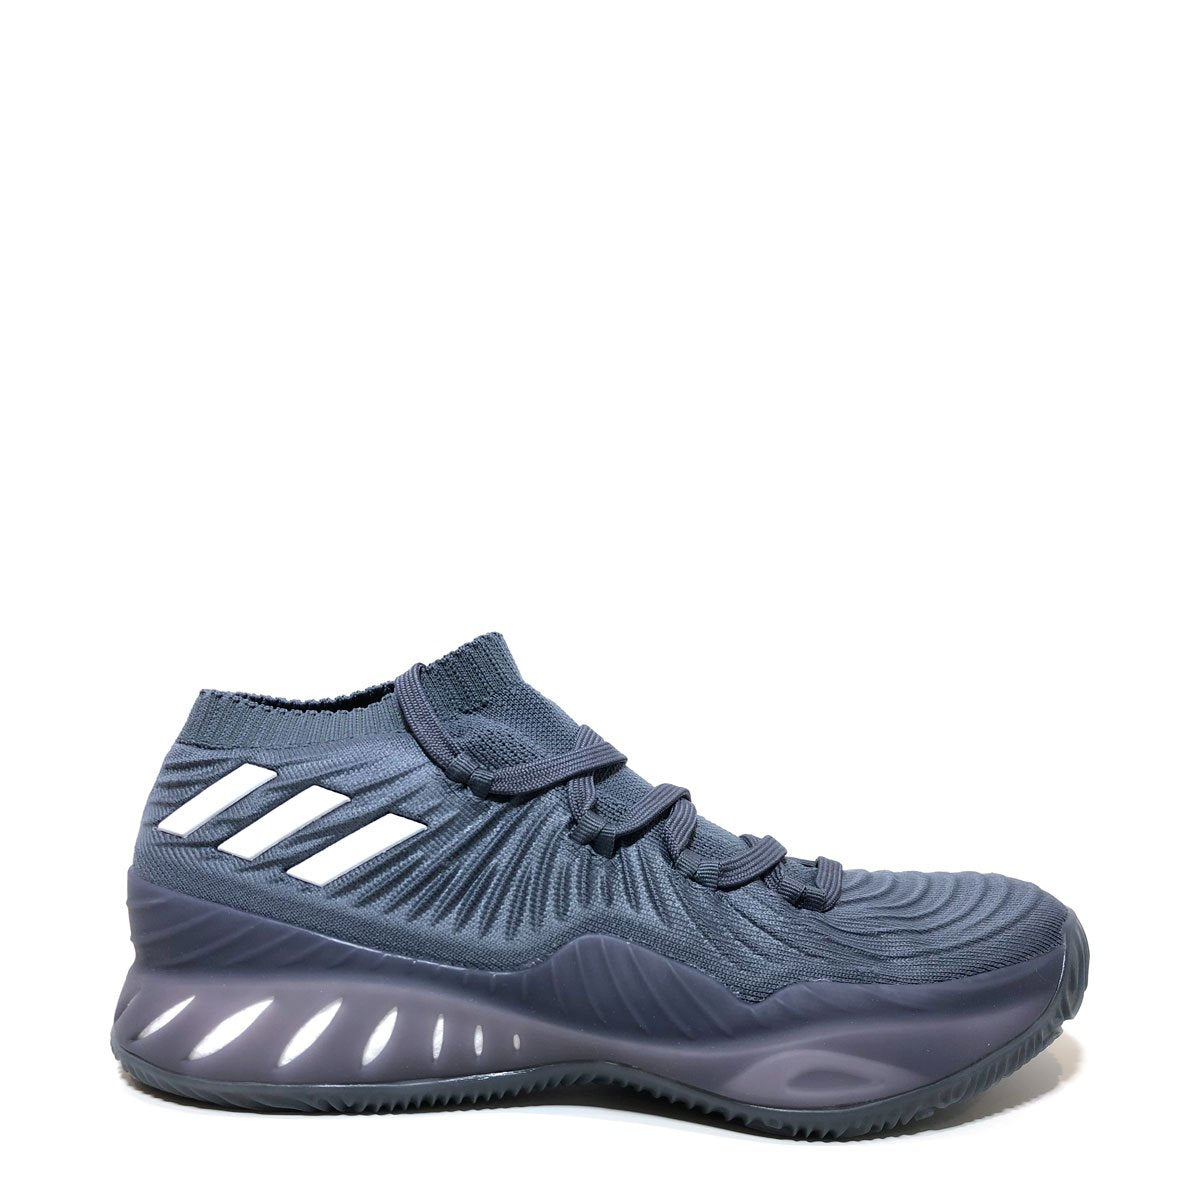 "[B75921] CRAZY EXPLOSIVE PK 2017 ""PLAYER EXCLUSIVE"""